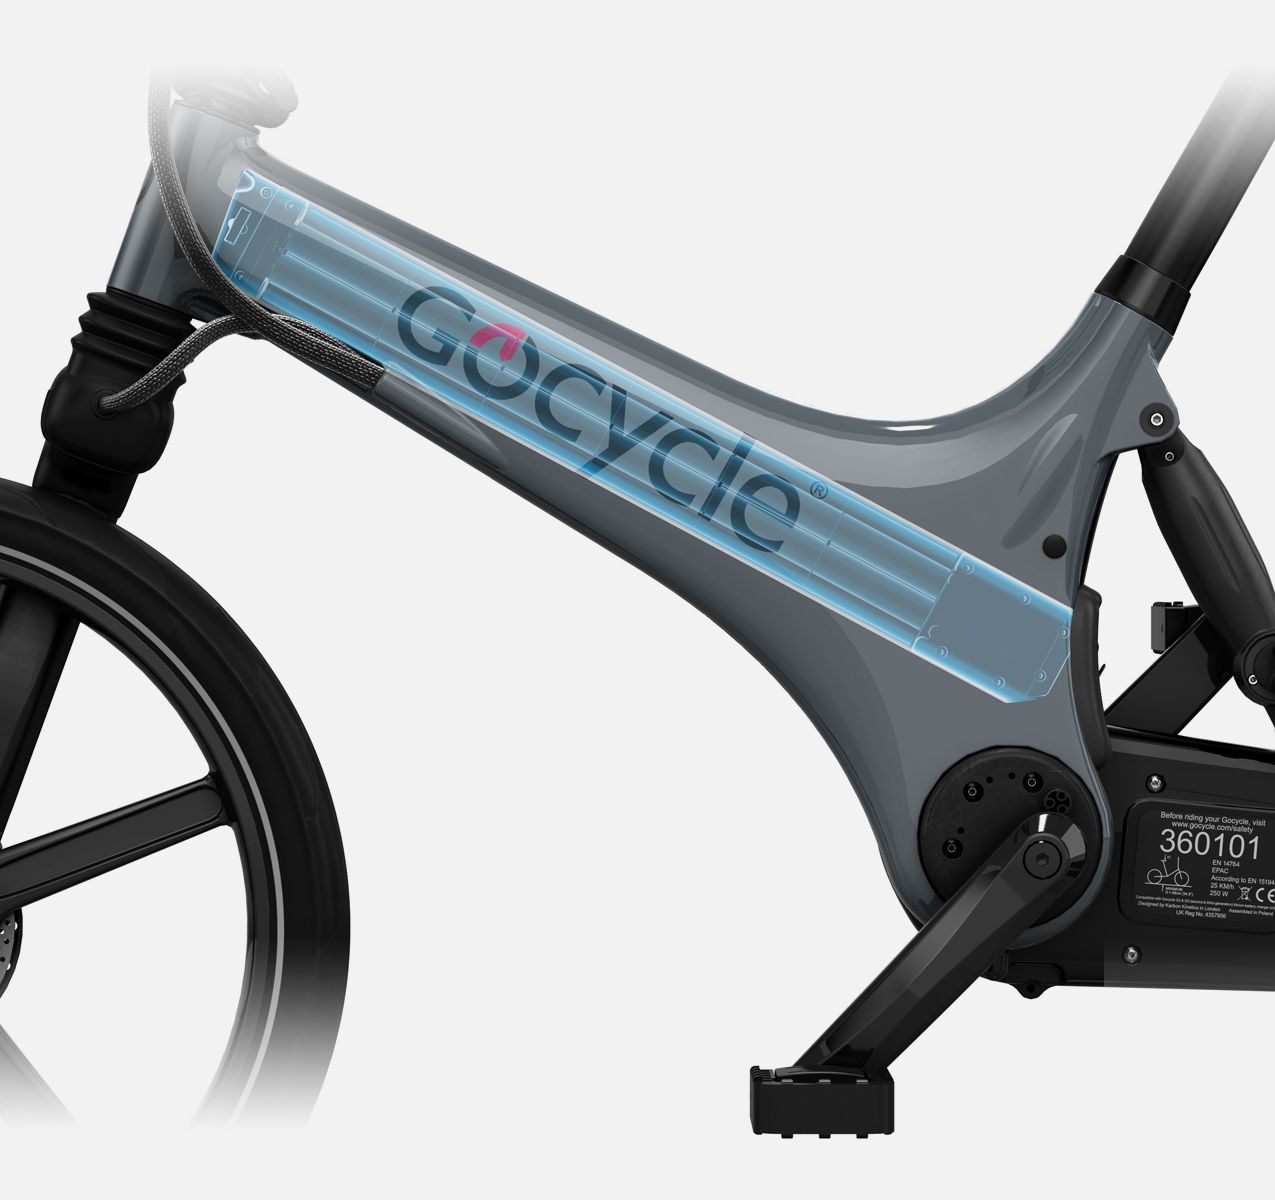 Daytime Running Lights became mandatory on all European cars in 2012 and the Gocycle G3 is the only production electric bicycle to have a daytime running light using proprietary automotive inspired light-pipe technology like a car.